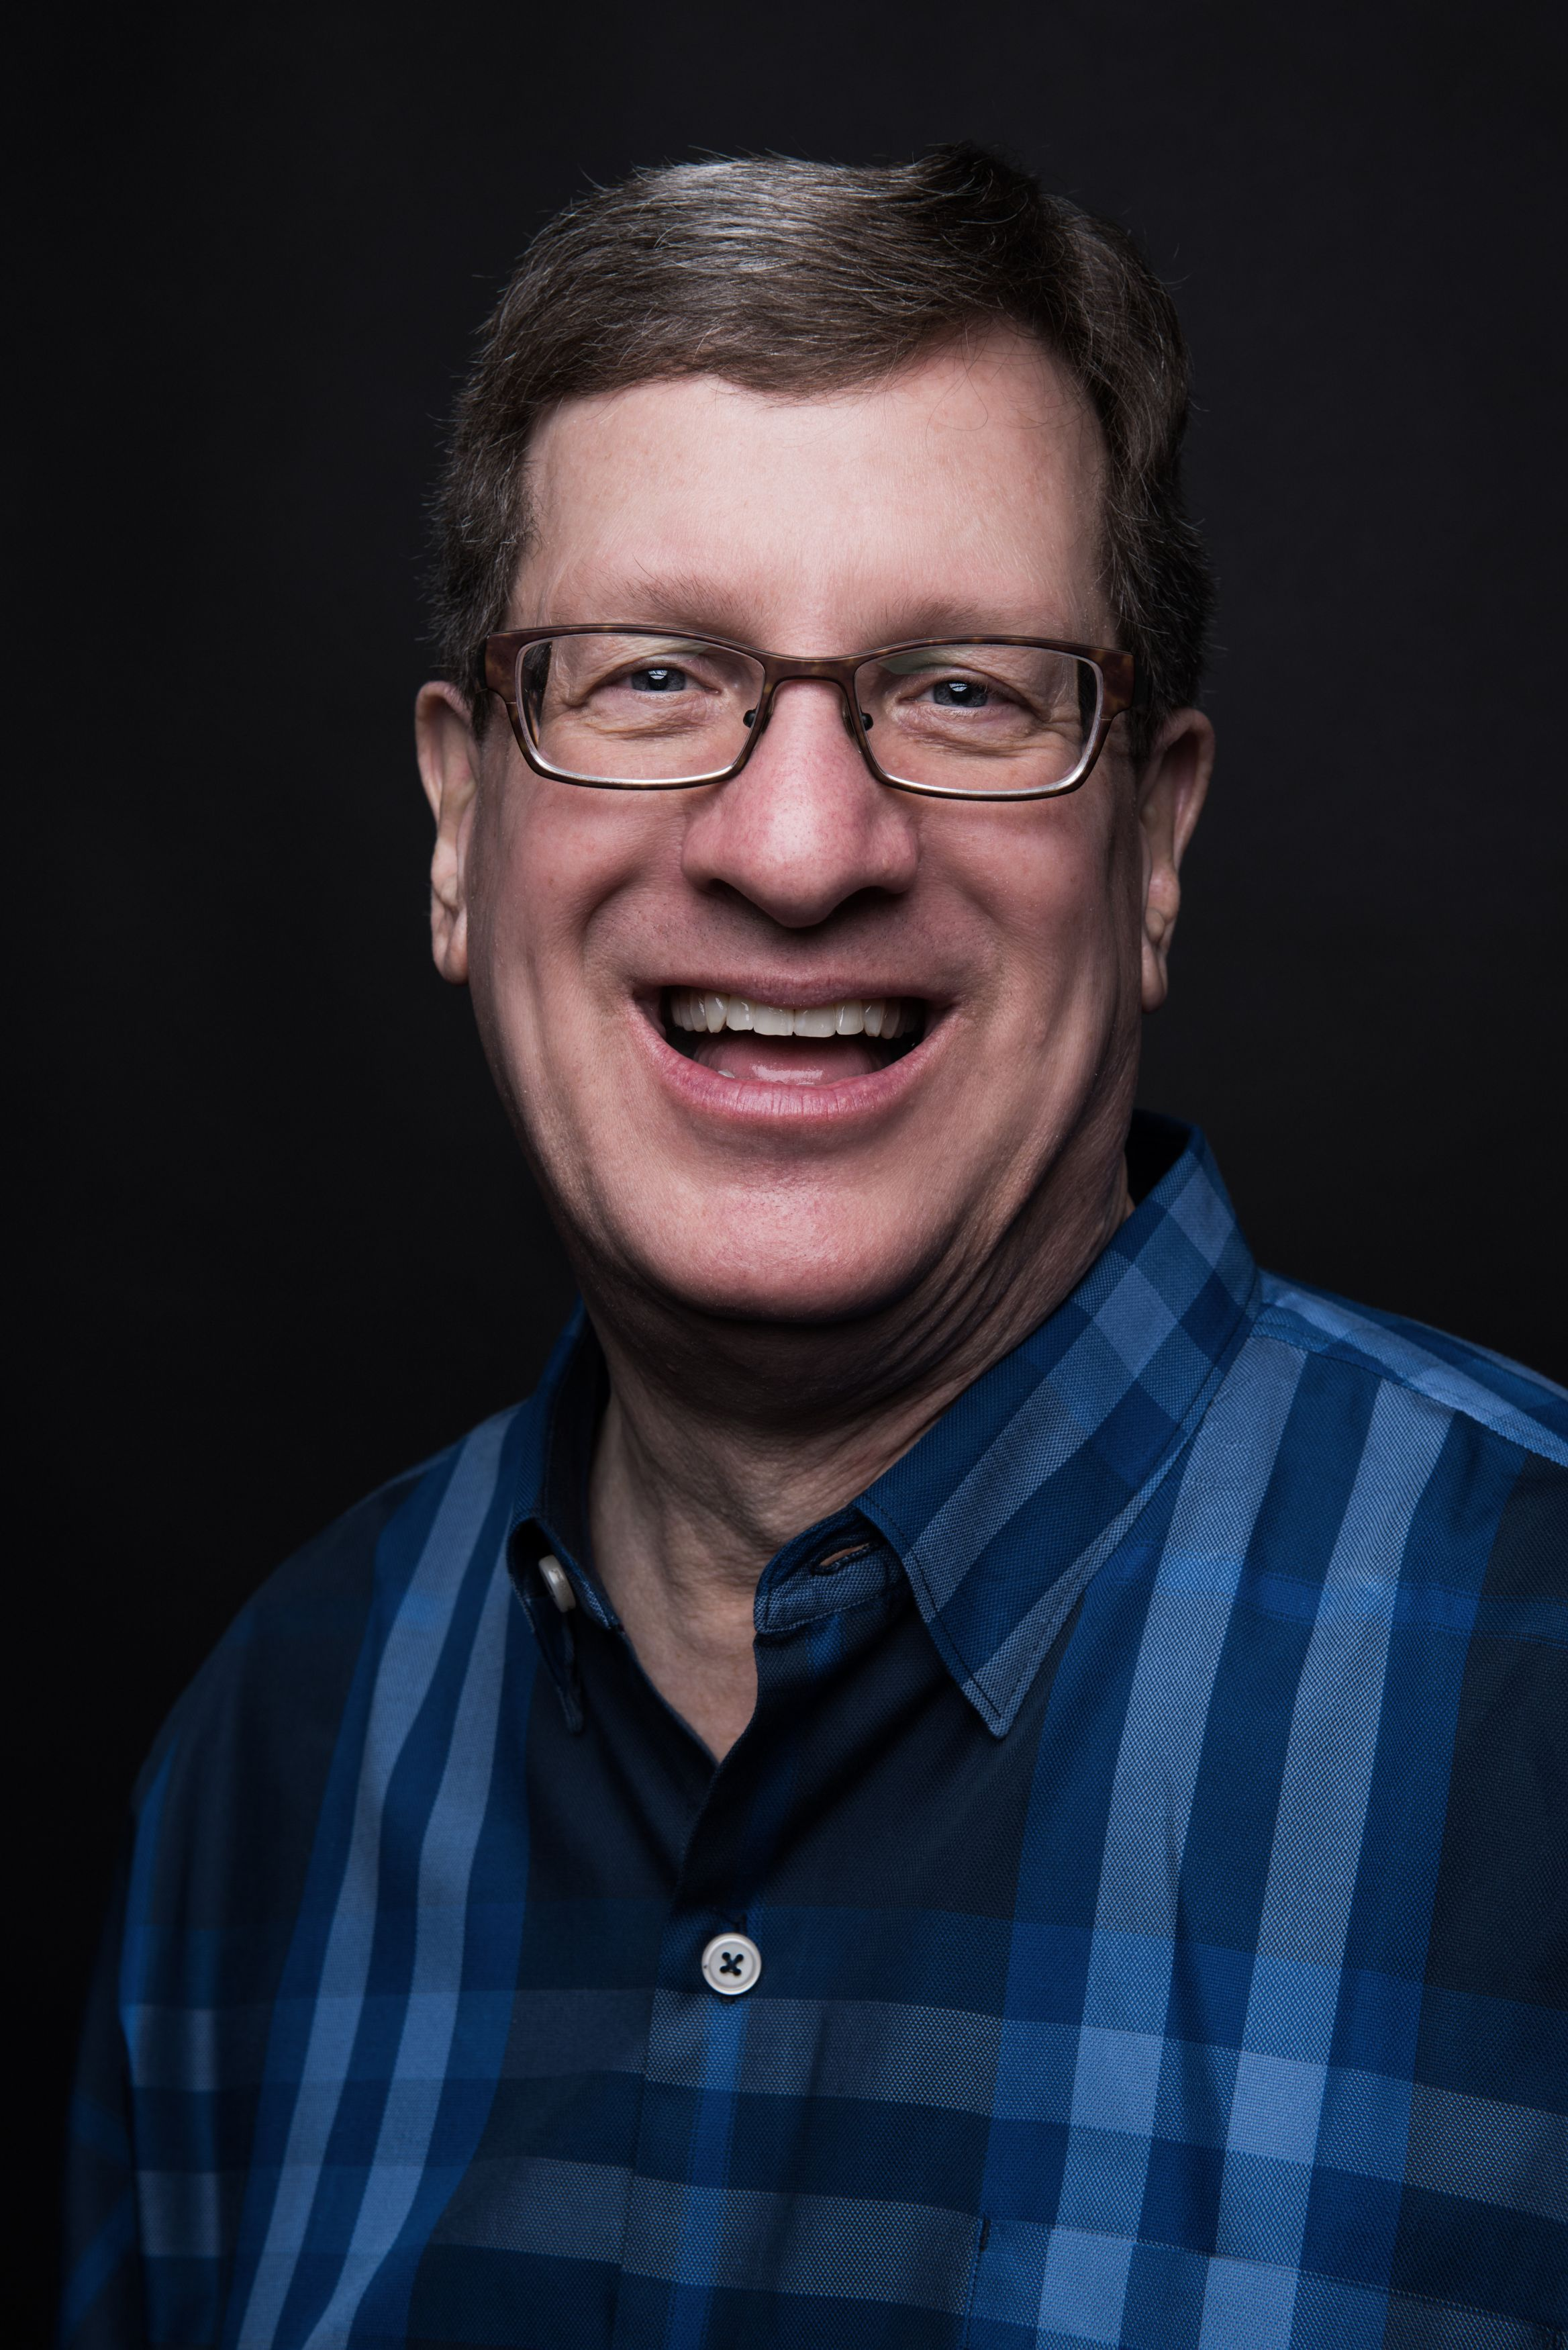 Lee Strobel 1.jpg